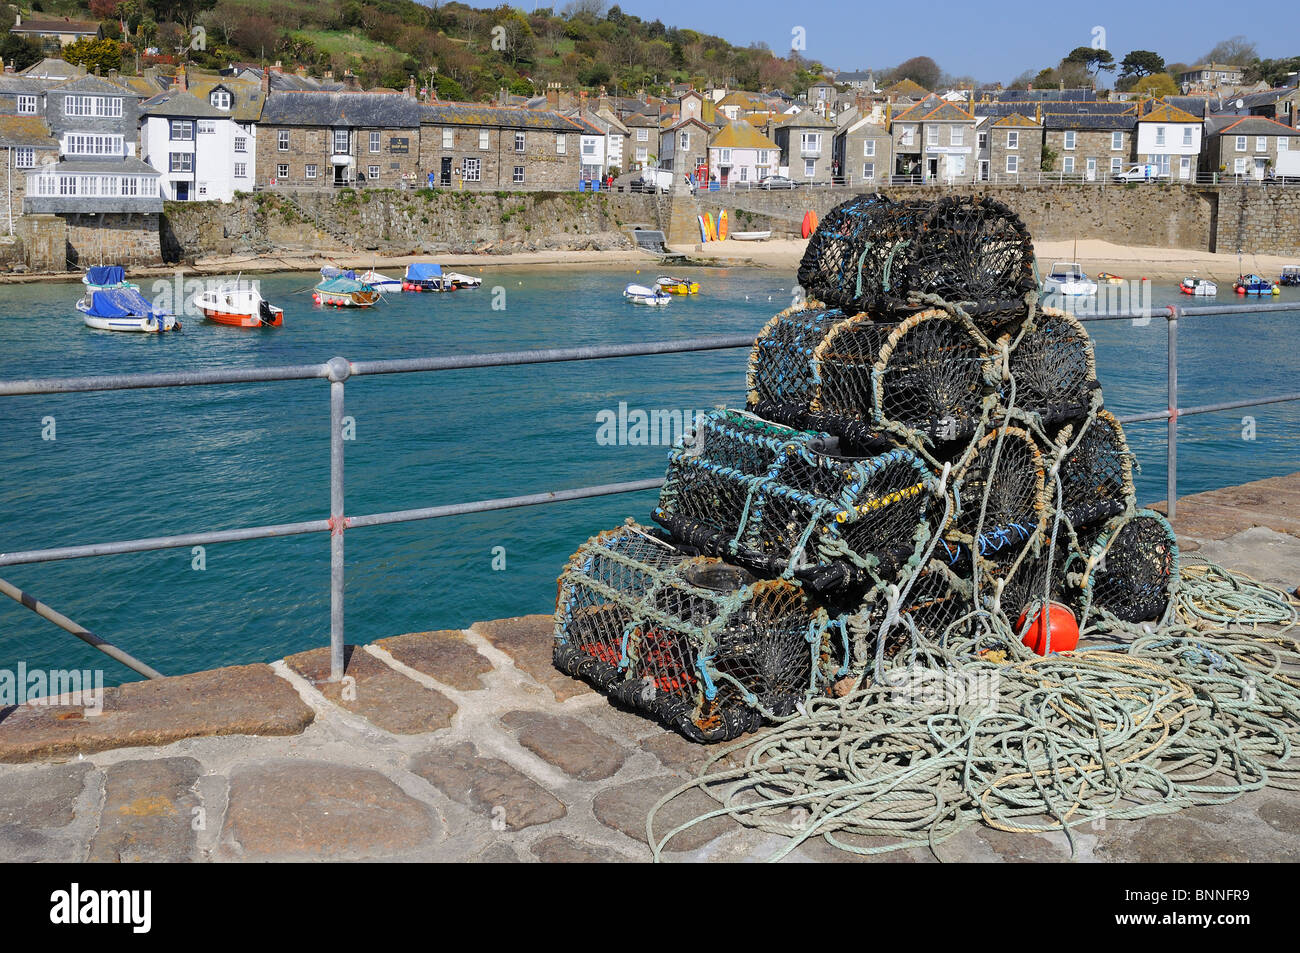 crab and lobster pots harbourside at mousehole in cornwall, uk - Stock Image